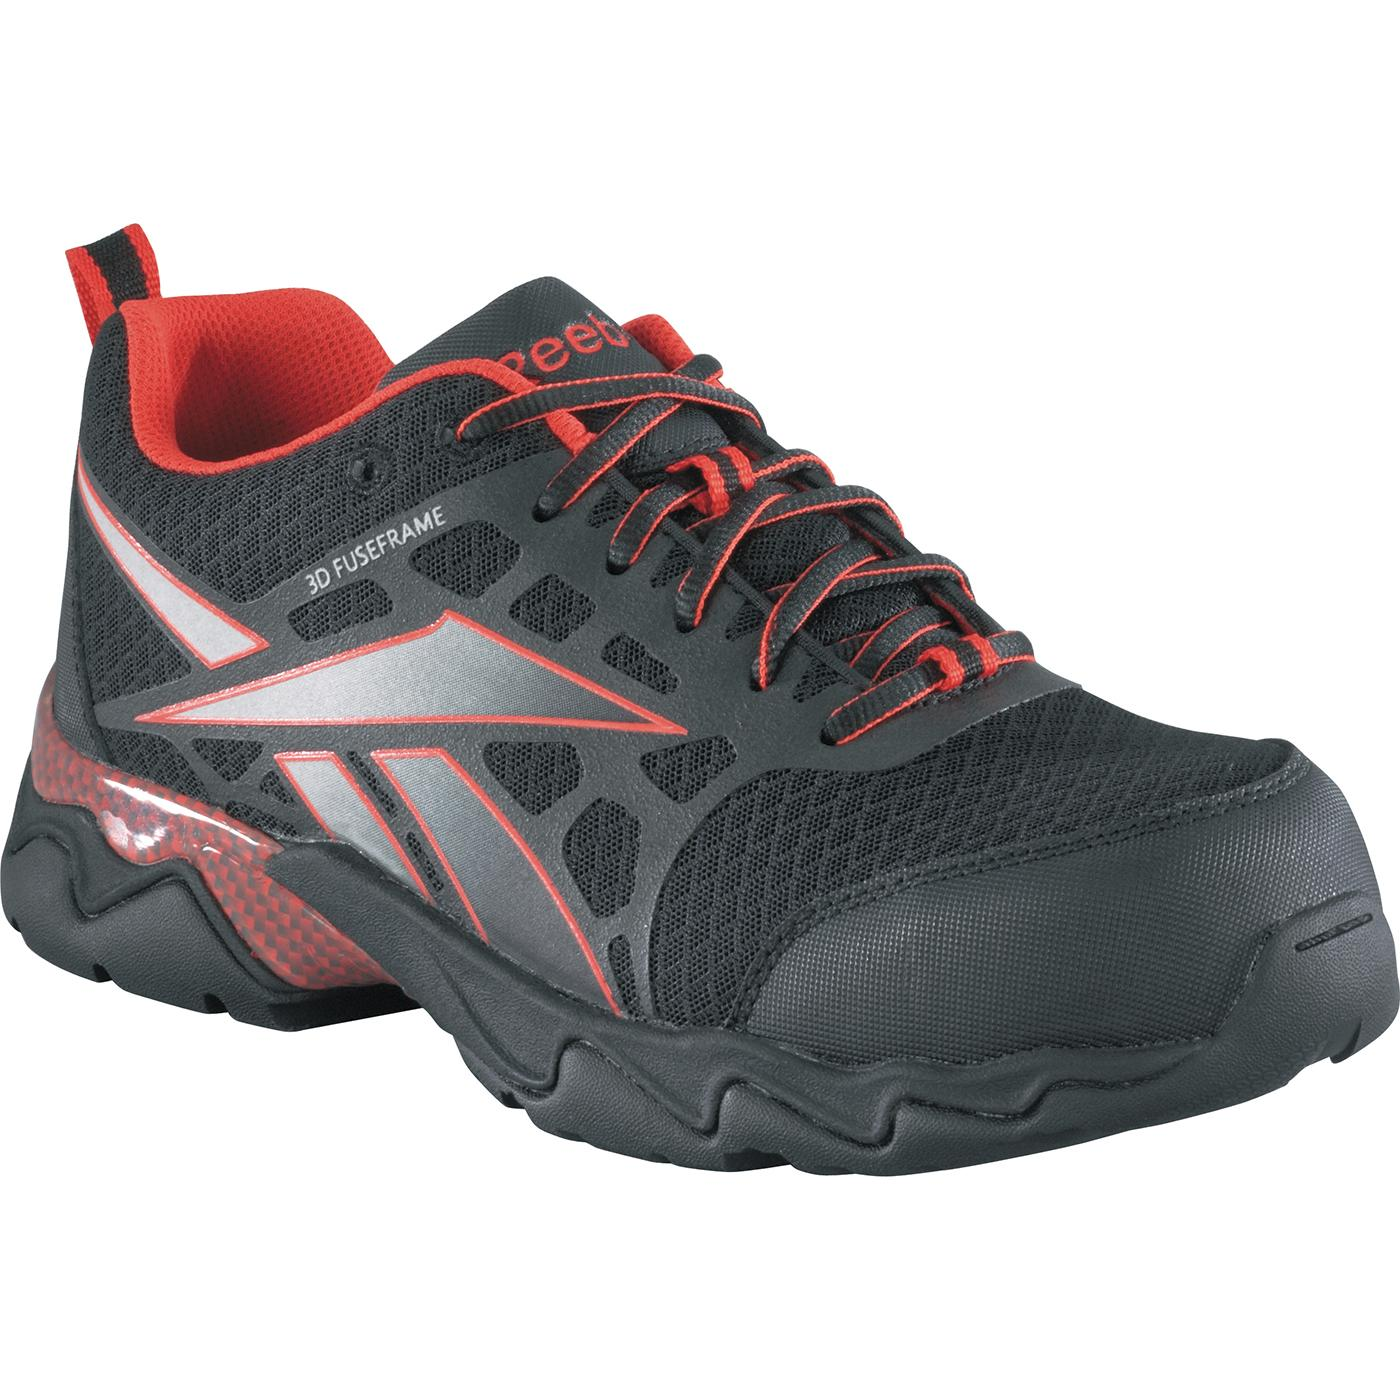 79ab9f326a6 Reebok Beamer Composite Toe Static-Dissipative Work Athletic Oxford